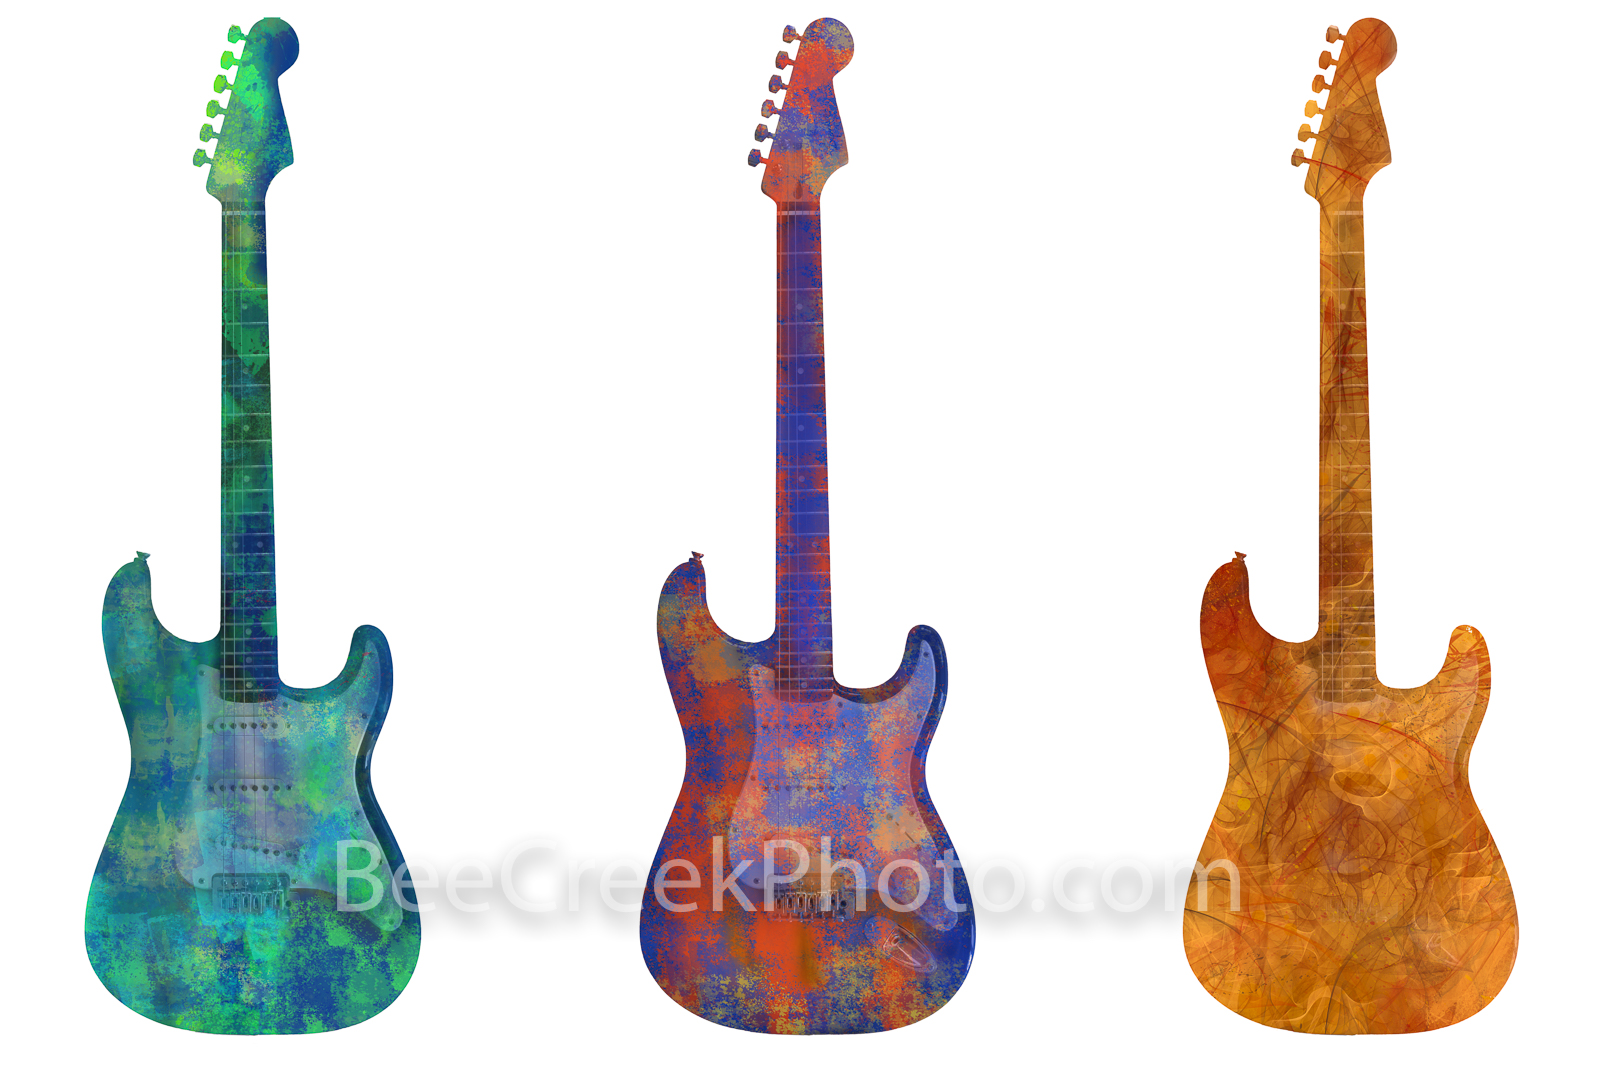 Abstract Guitar Trio - A fun colorized digital group of three electric guitars for your wall. This is a abstract digital image...